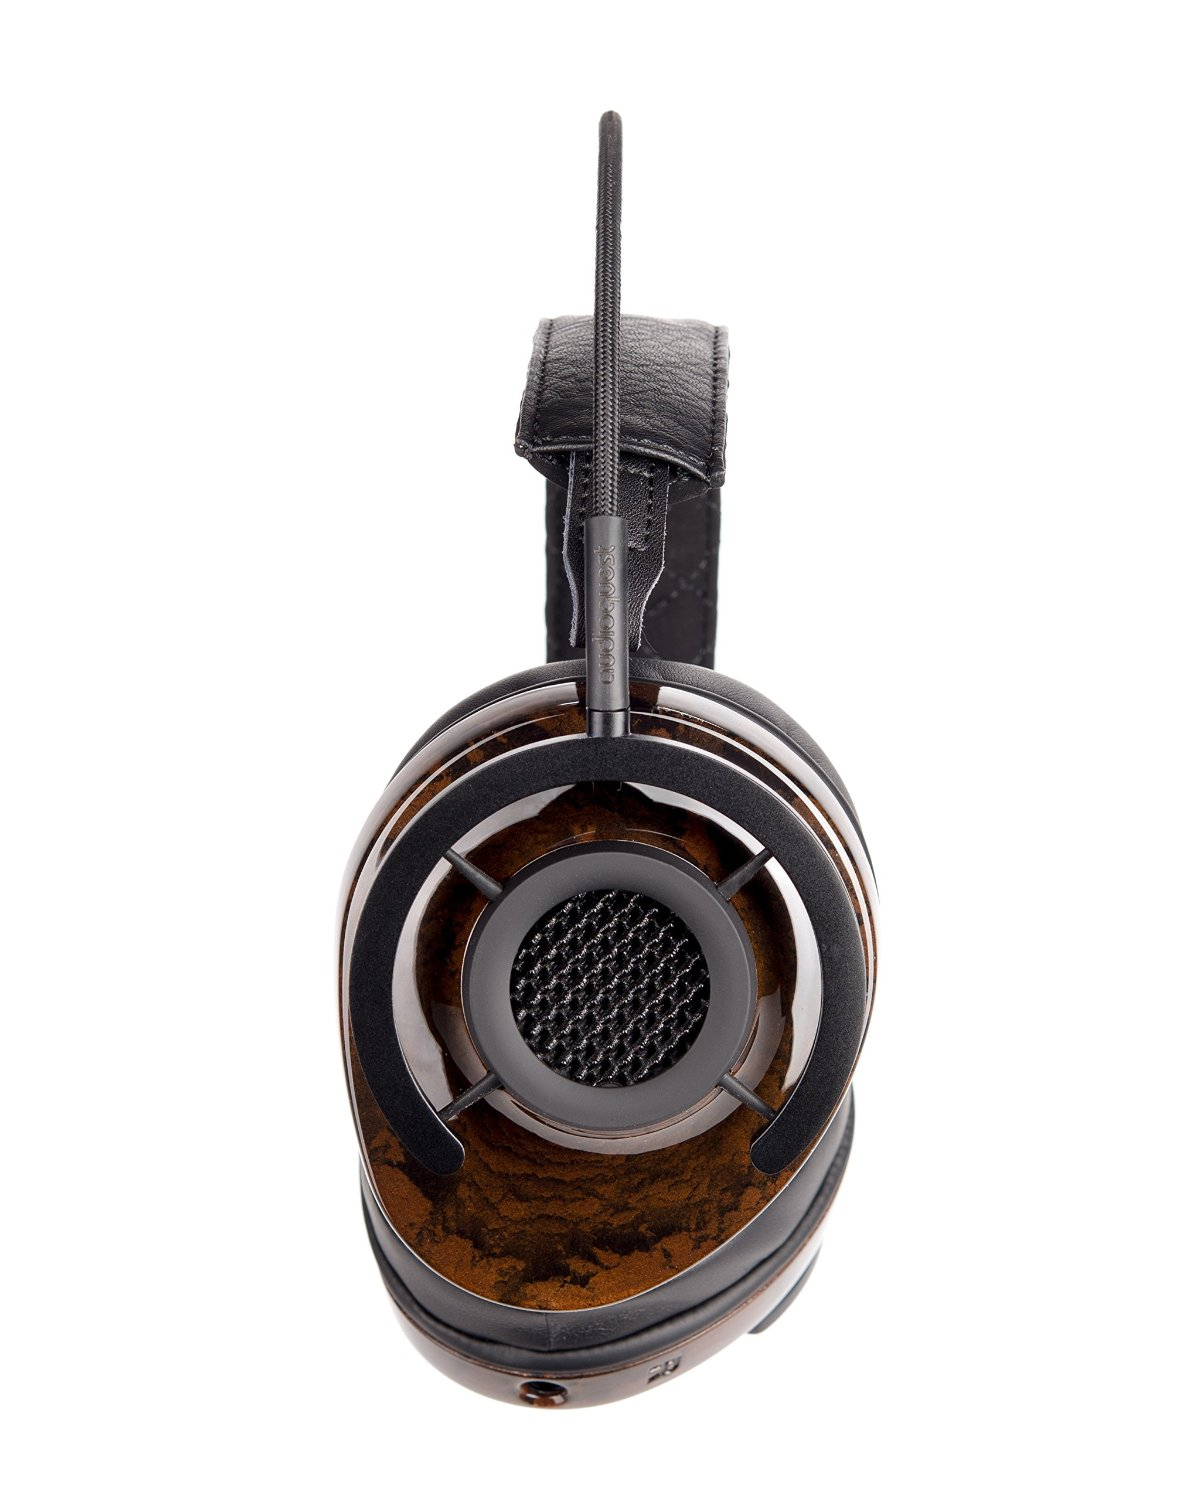 AudioQuest Announces NightHawk Headphones